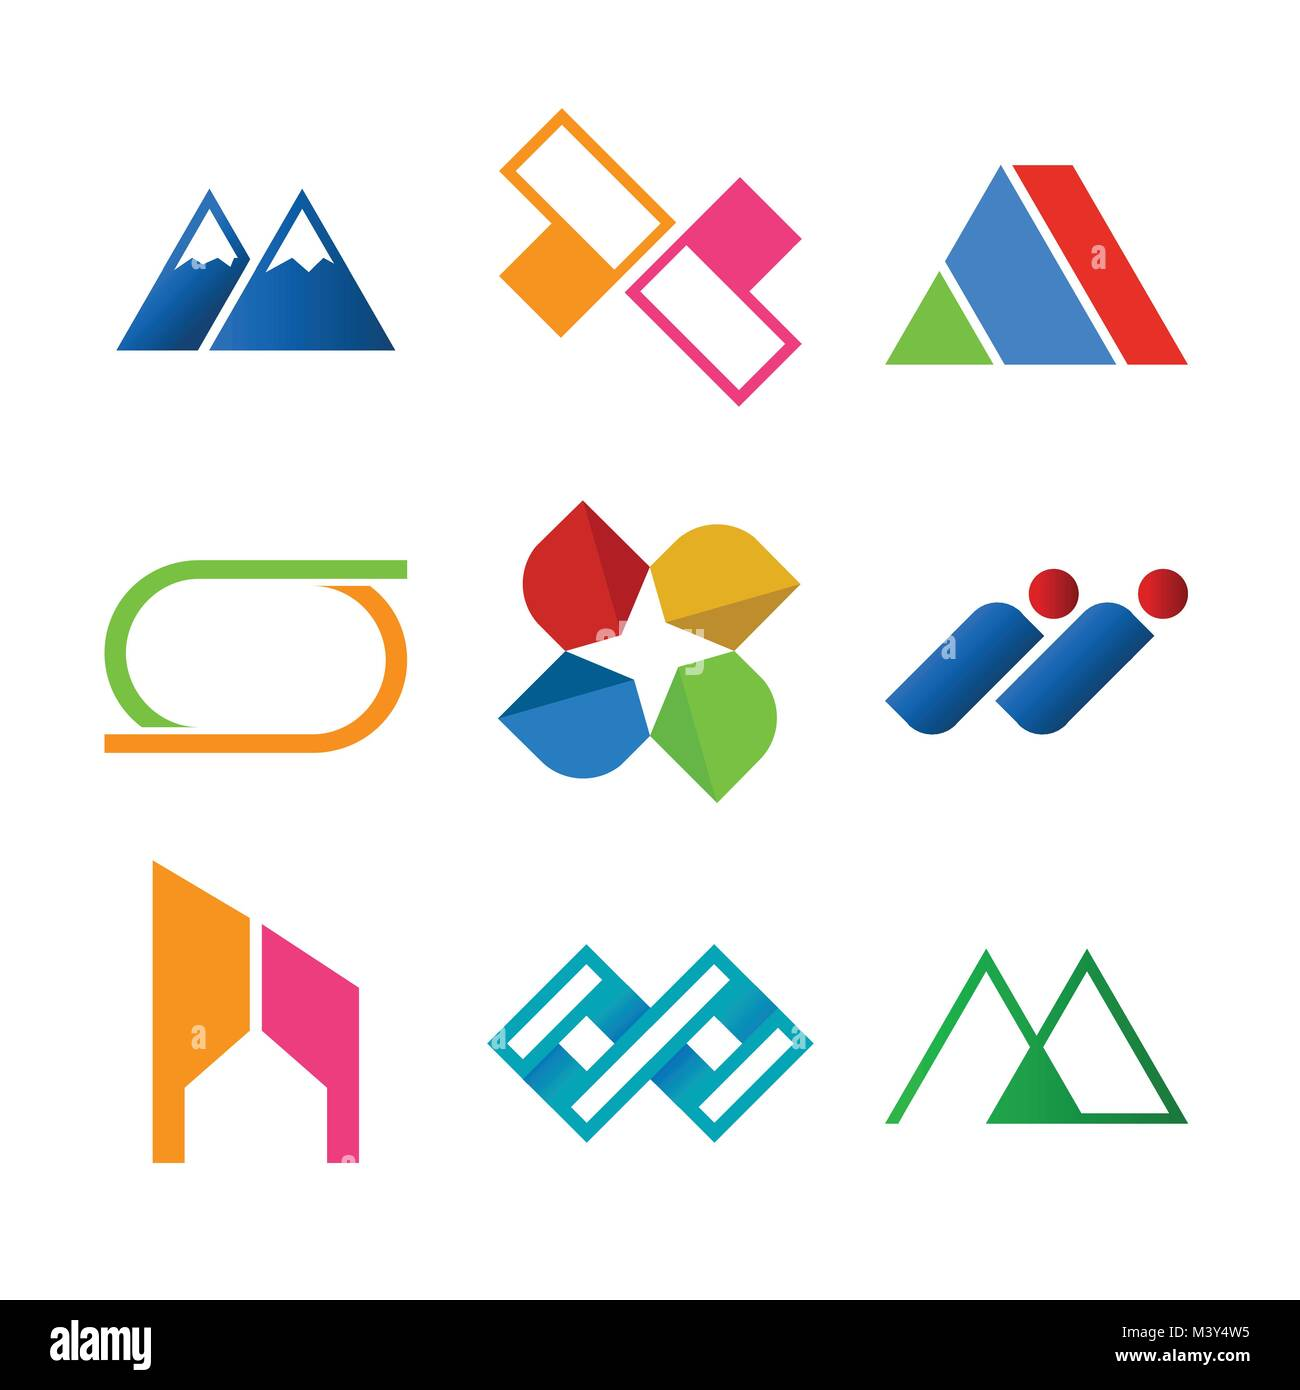 Corporate logo stock photos corporate logo stock images alamy abstract corporate symbol shape vector illustration graphic design set stock image biocorpaavc Images